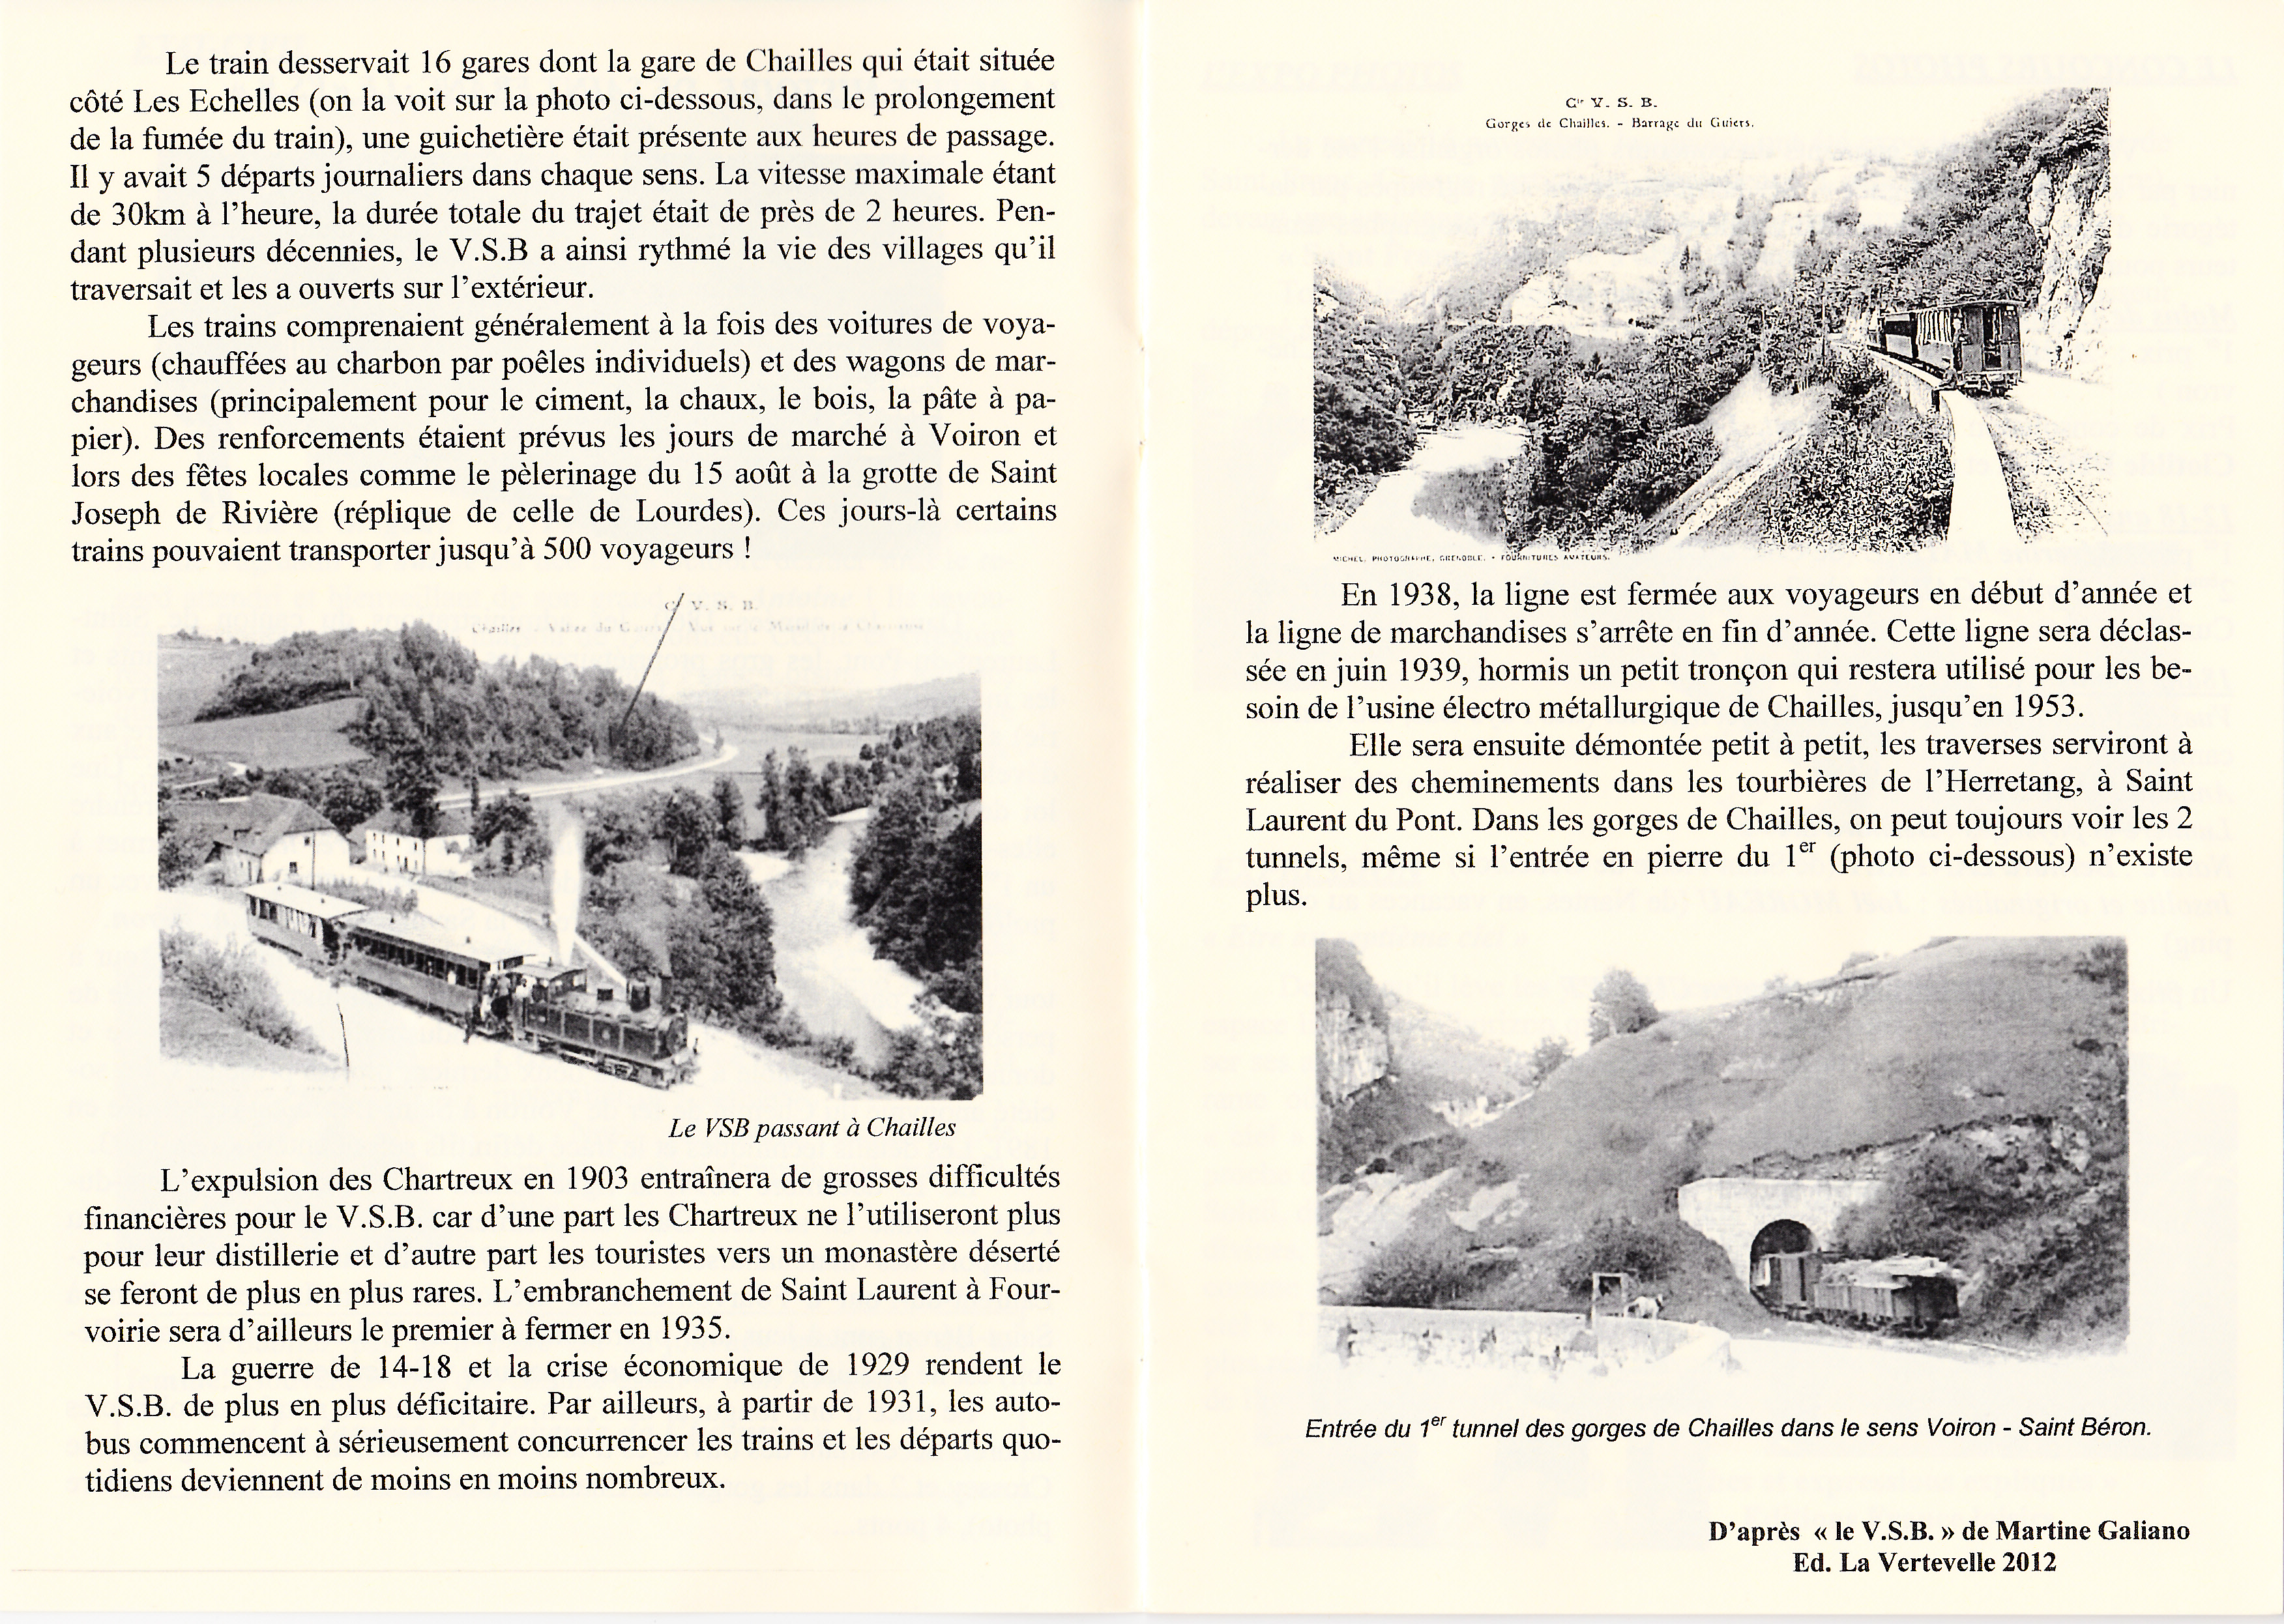 LPS n° 17 Pages 4 & 5